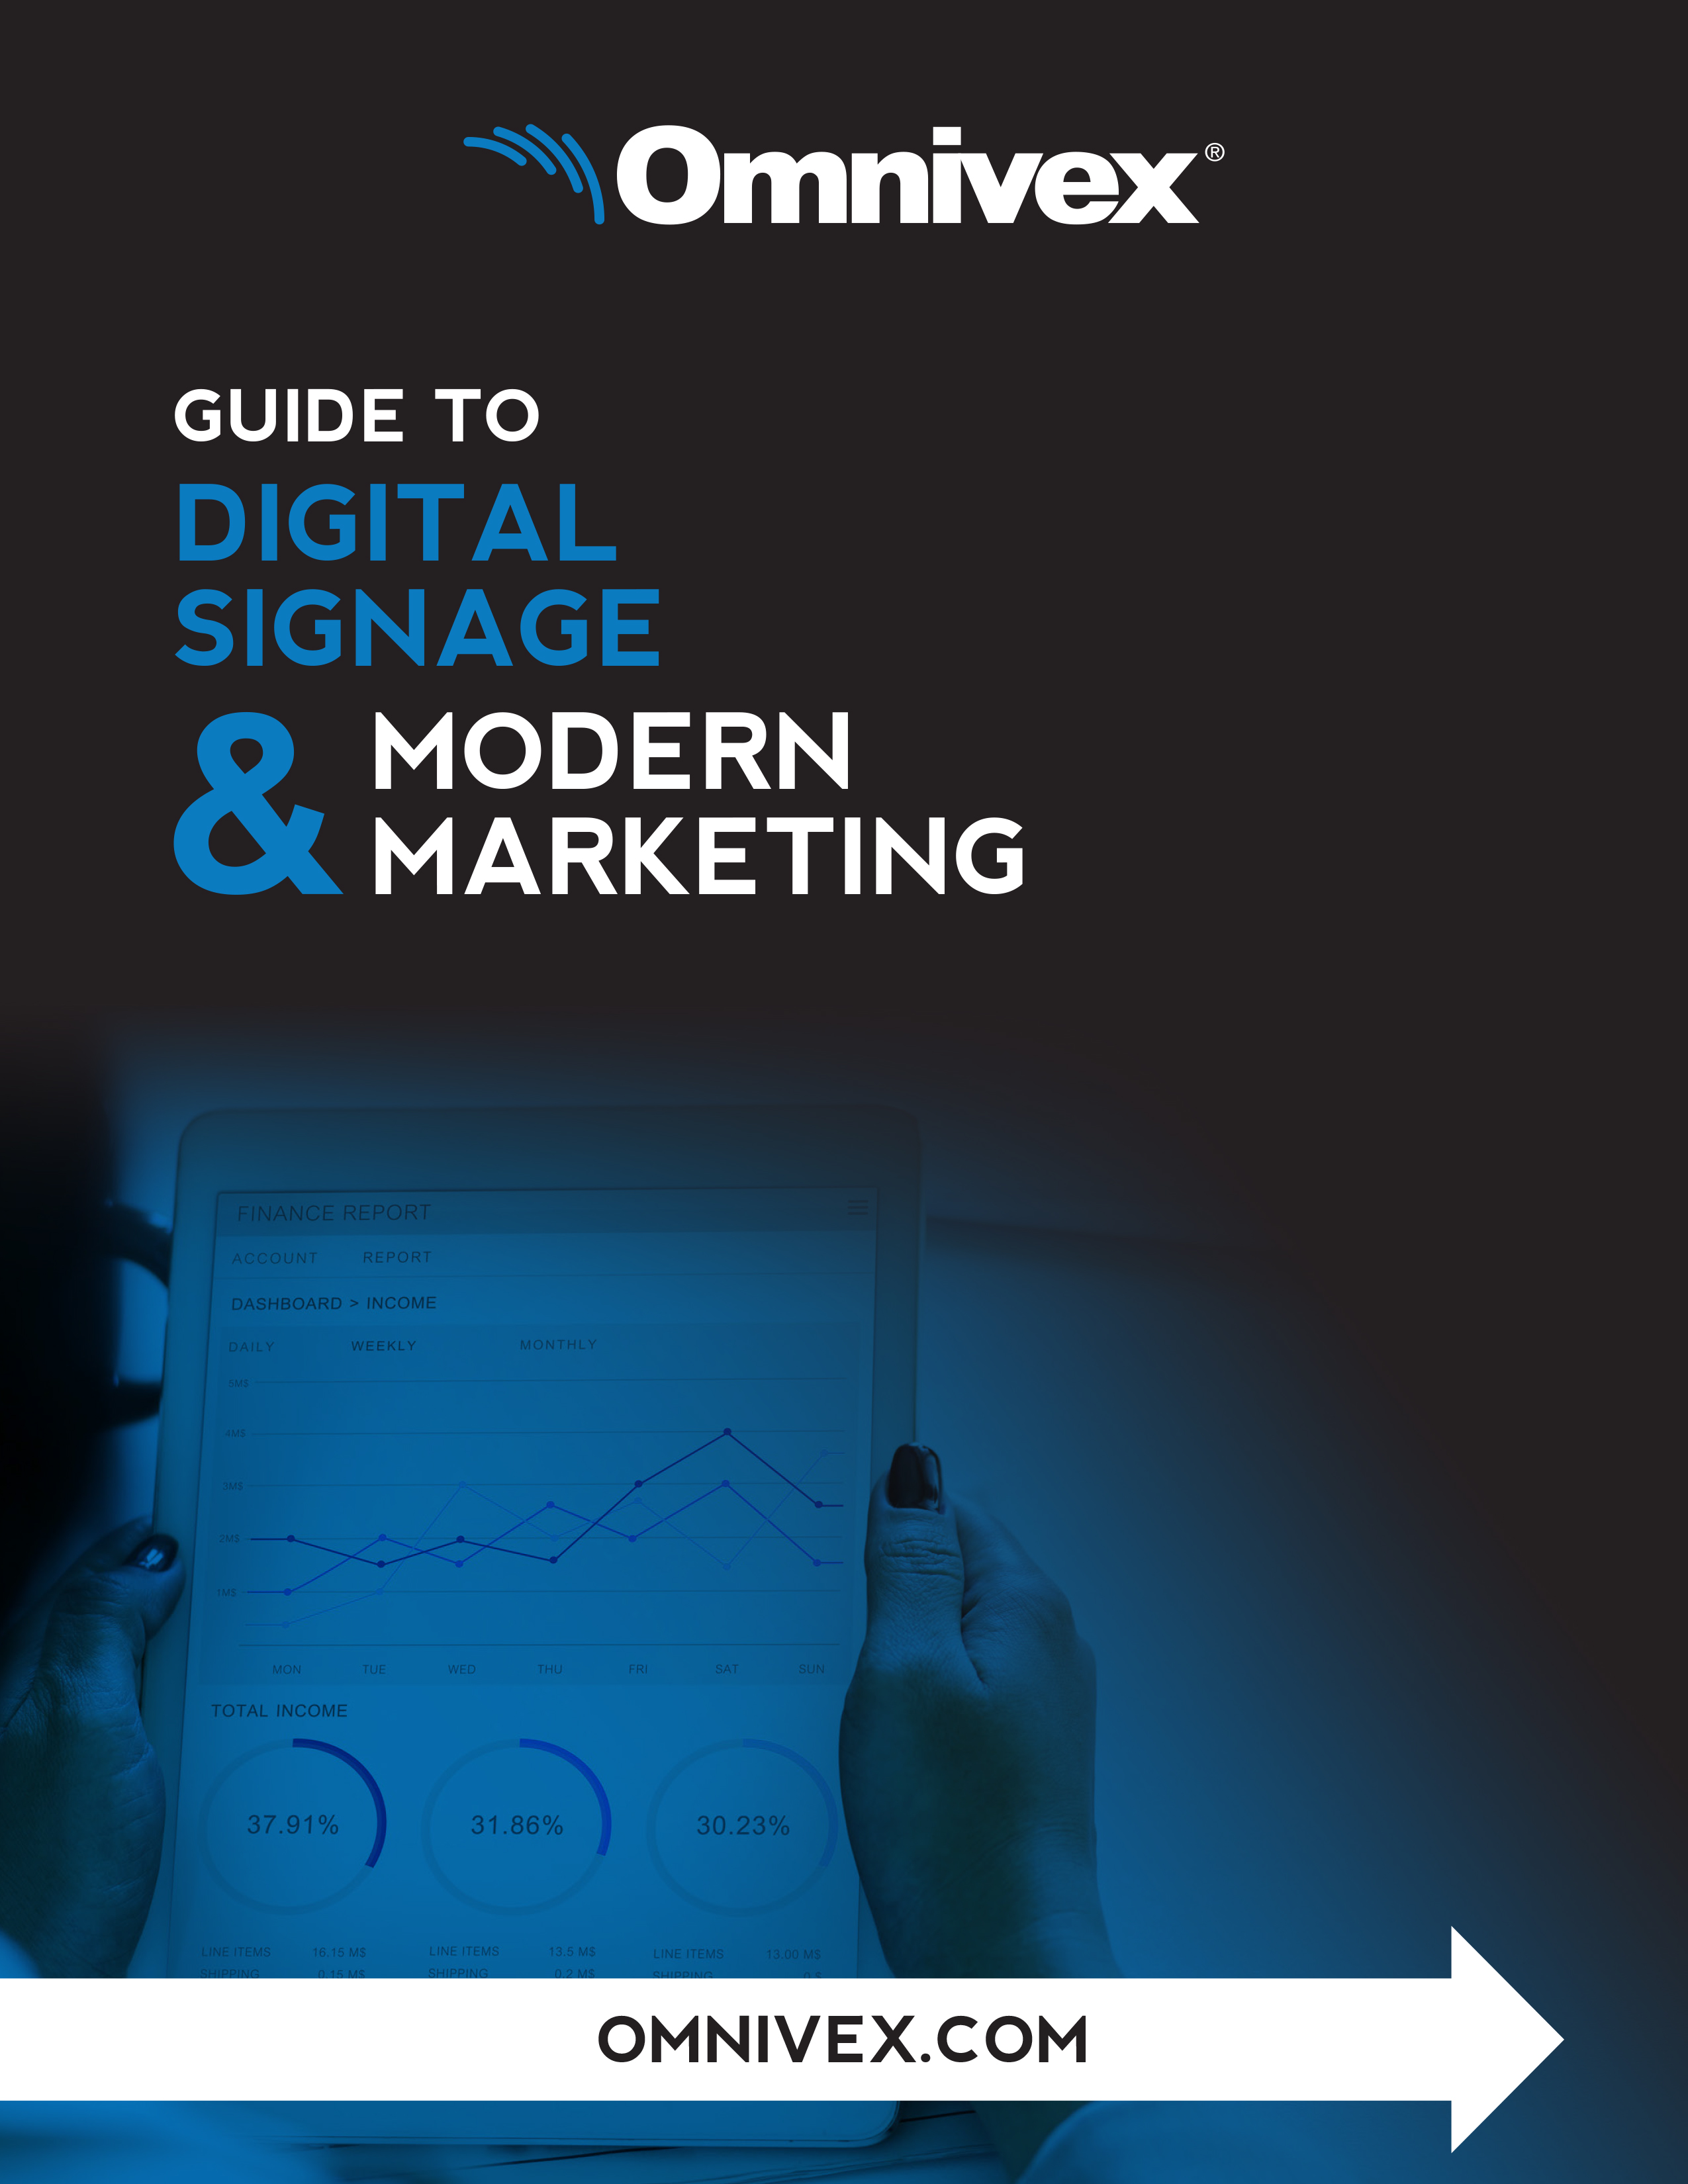 Omnivex Guide to Digital Signage and Modern Marketing